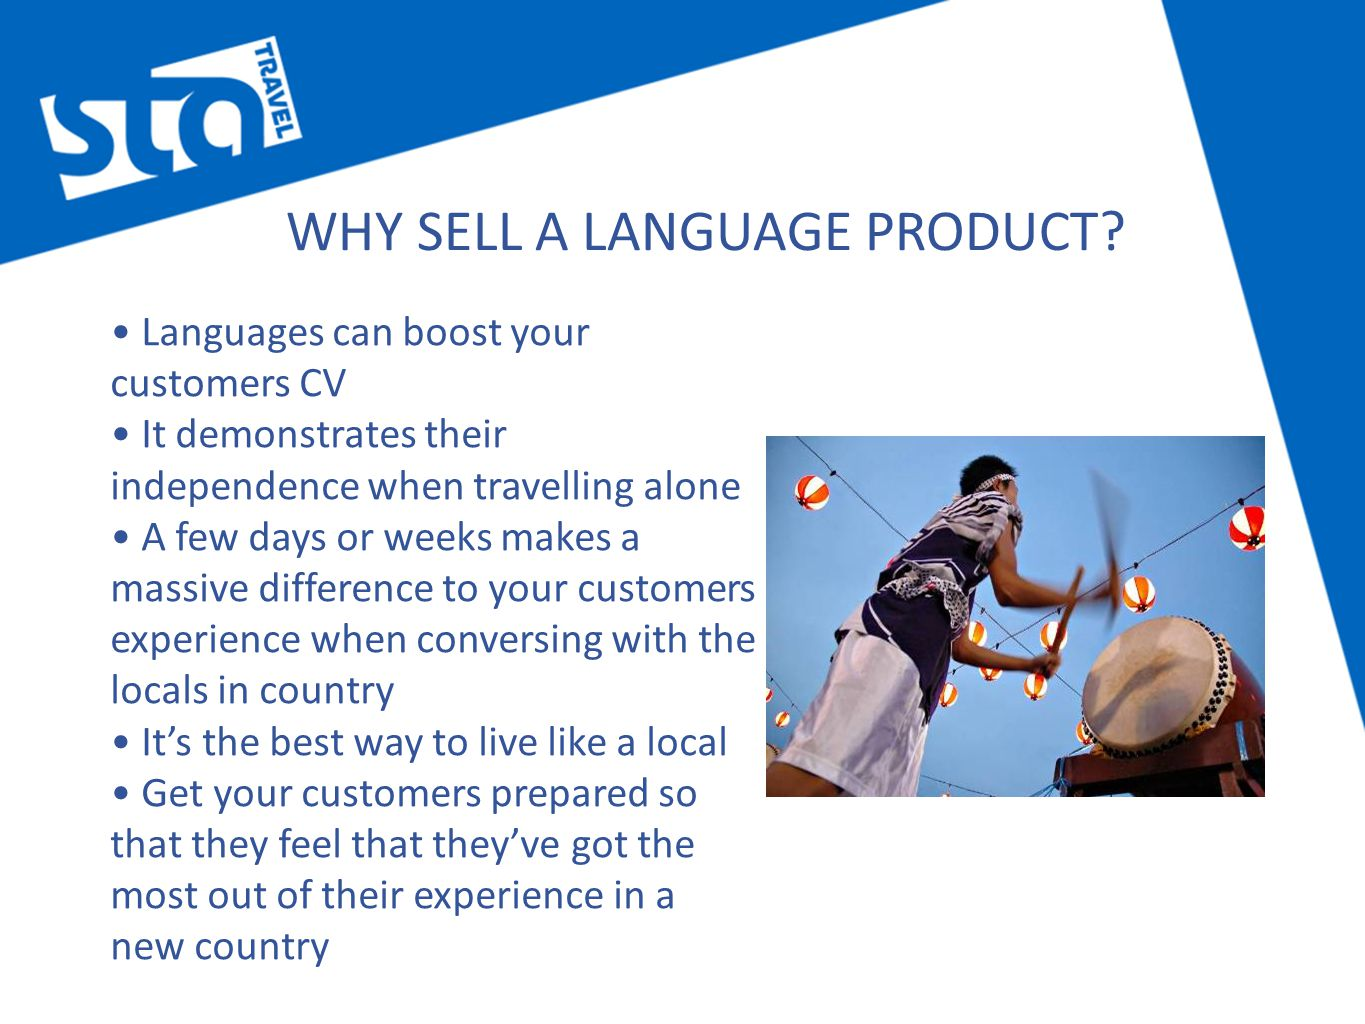 WHY SELL A LANGUAGE PRODUCT.